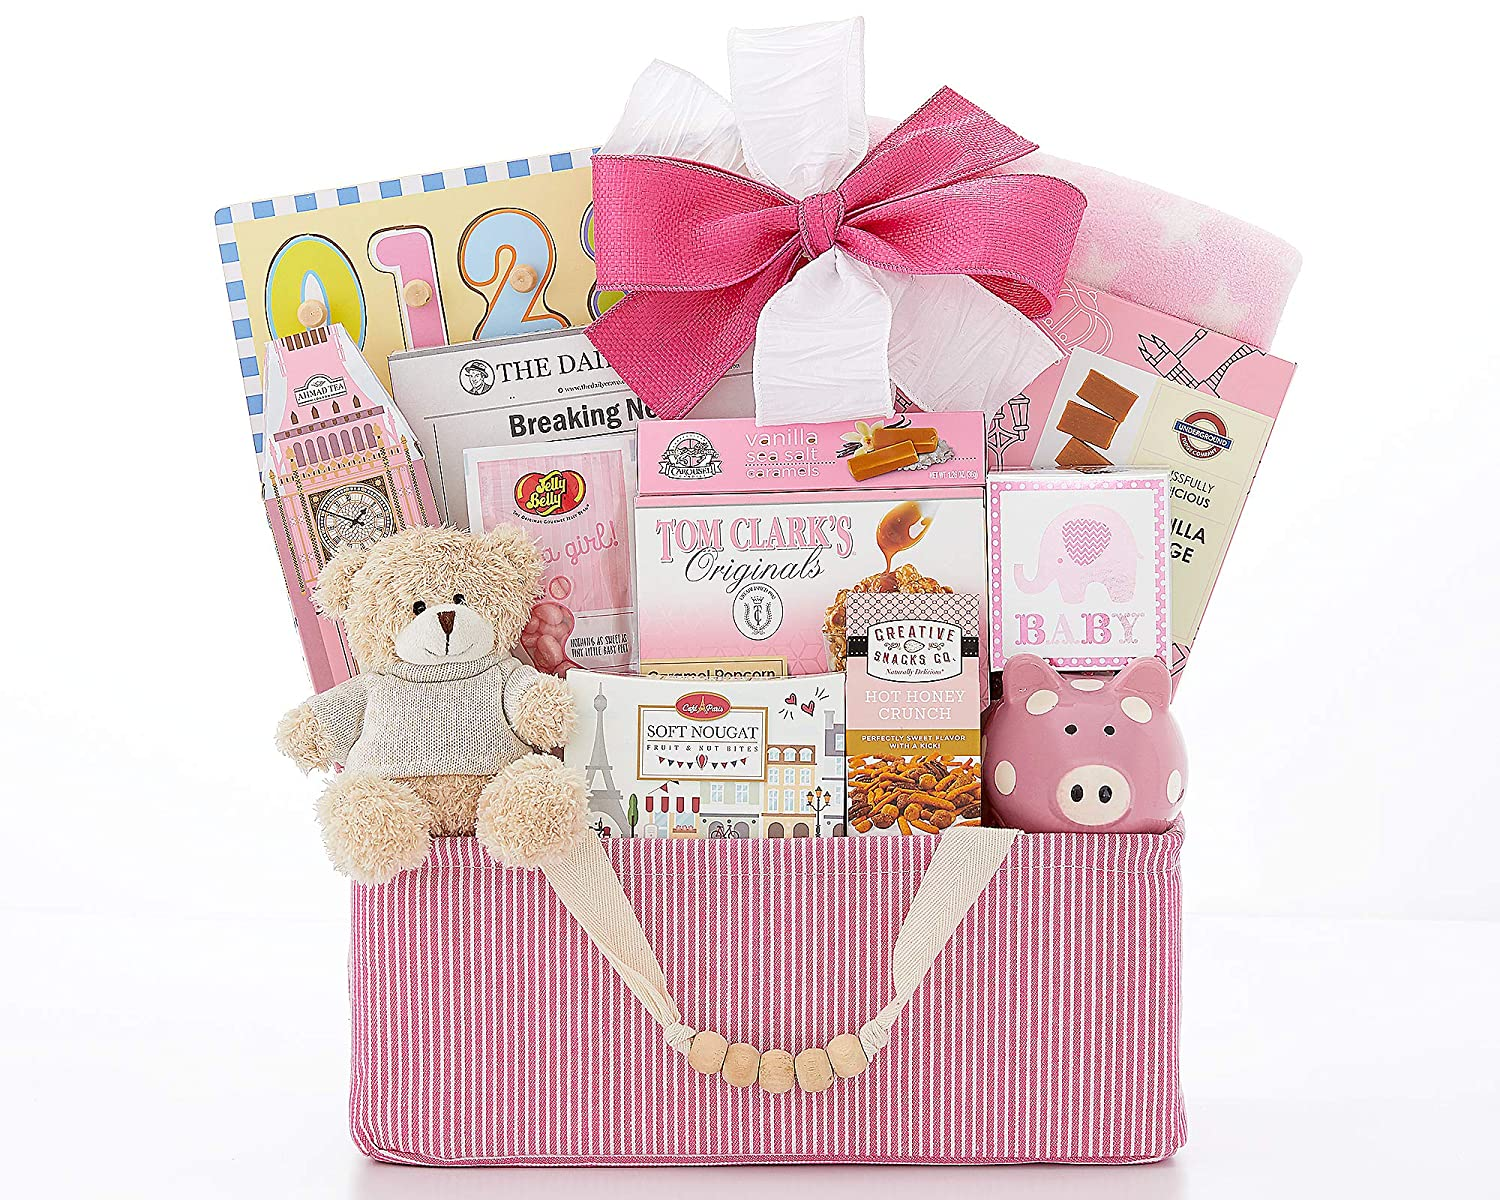 B00021NBLM Newborn Baby Gift Basket The Bundle of Joy Pink Newborn Baby Girl Gift Basket Congratulations Baby Shower Gift Welcome Home by Wine Country Gift Baskets 91MjD7q2BpxL